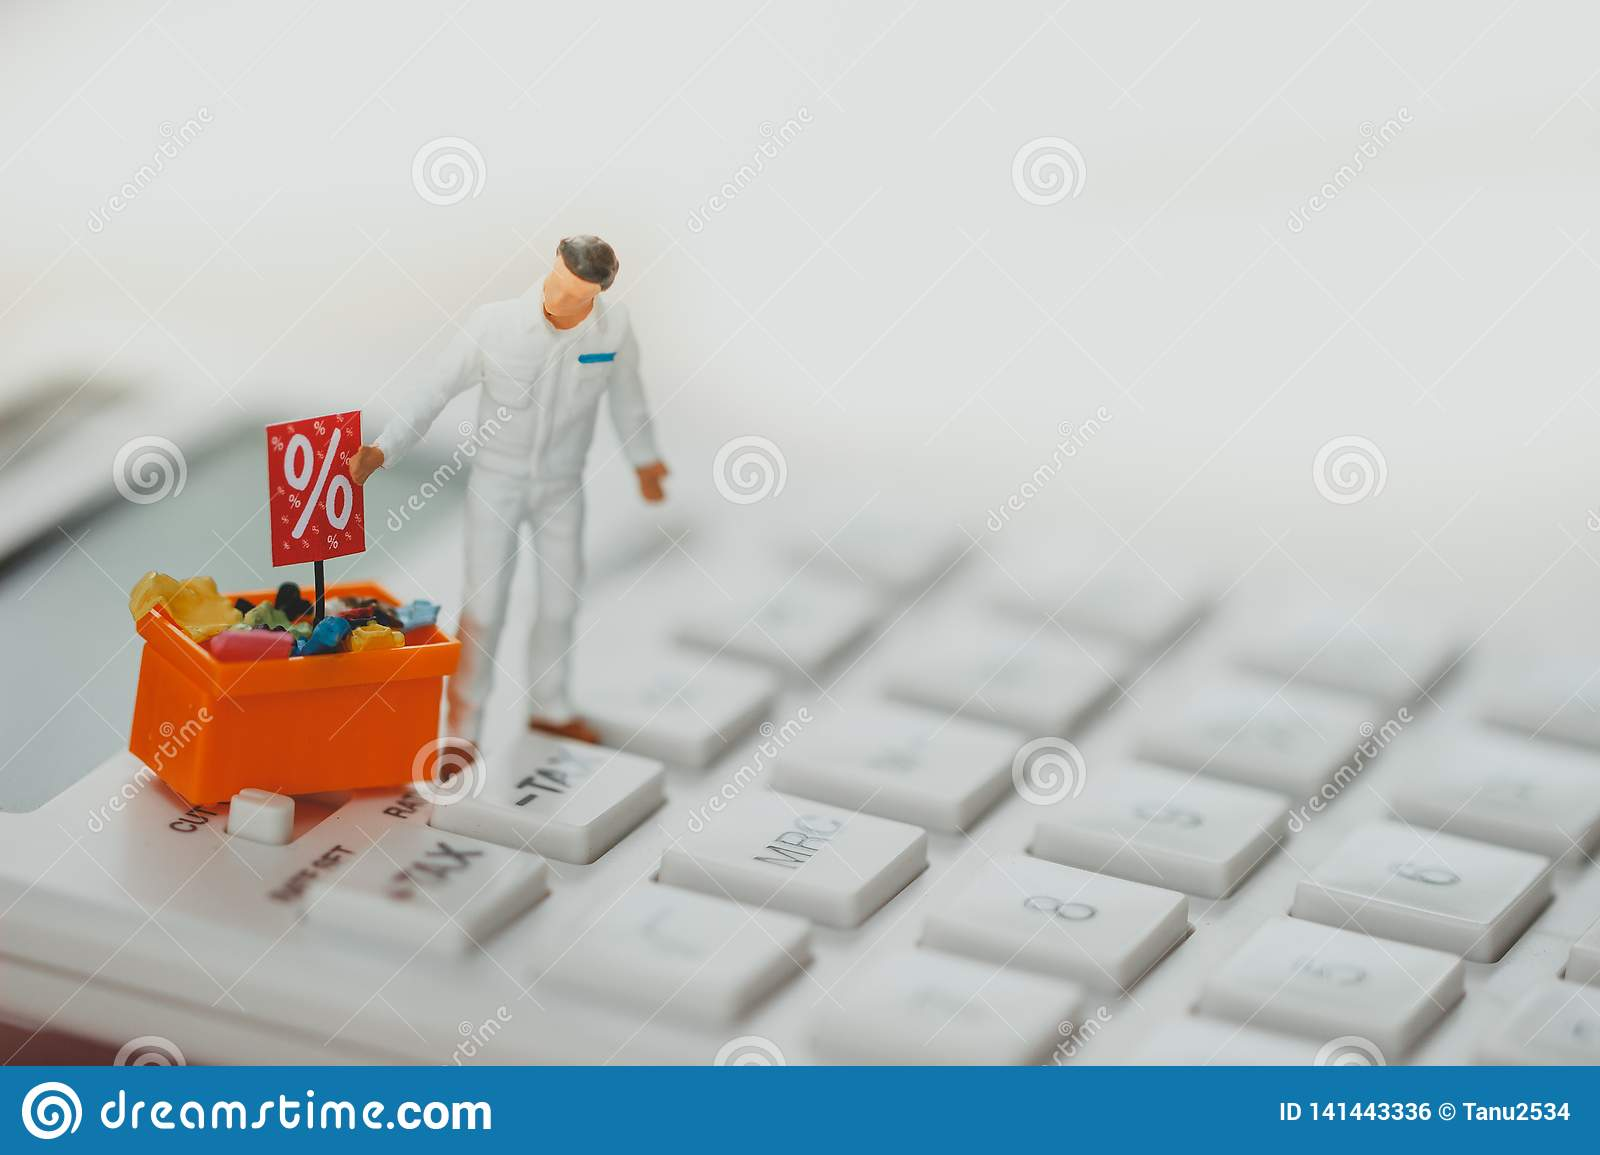 Shopping and e-commerce concept.